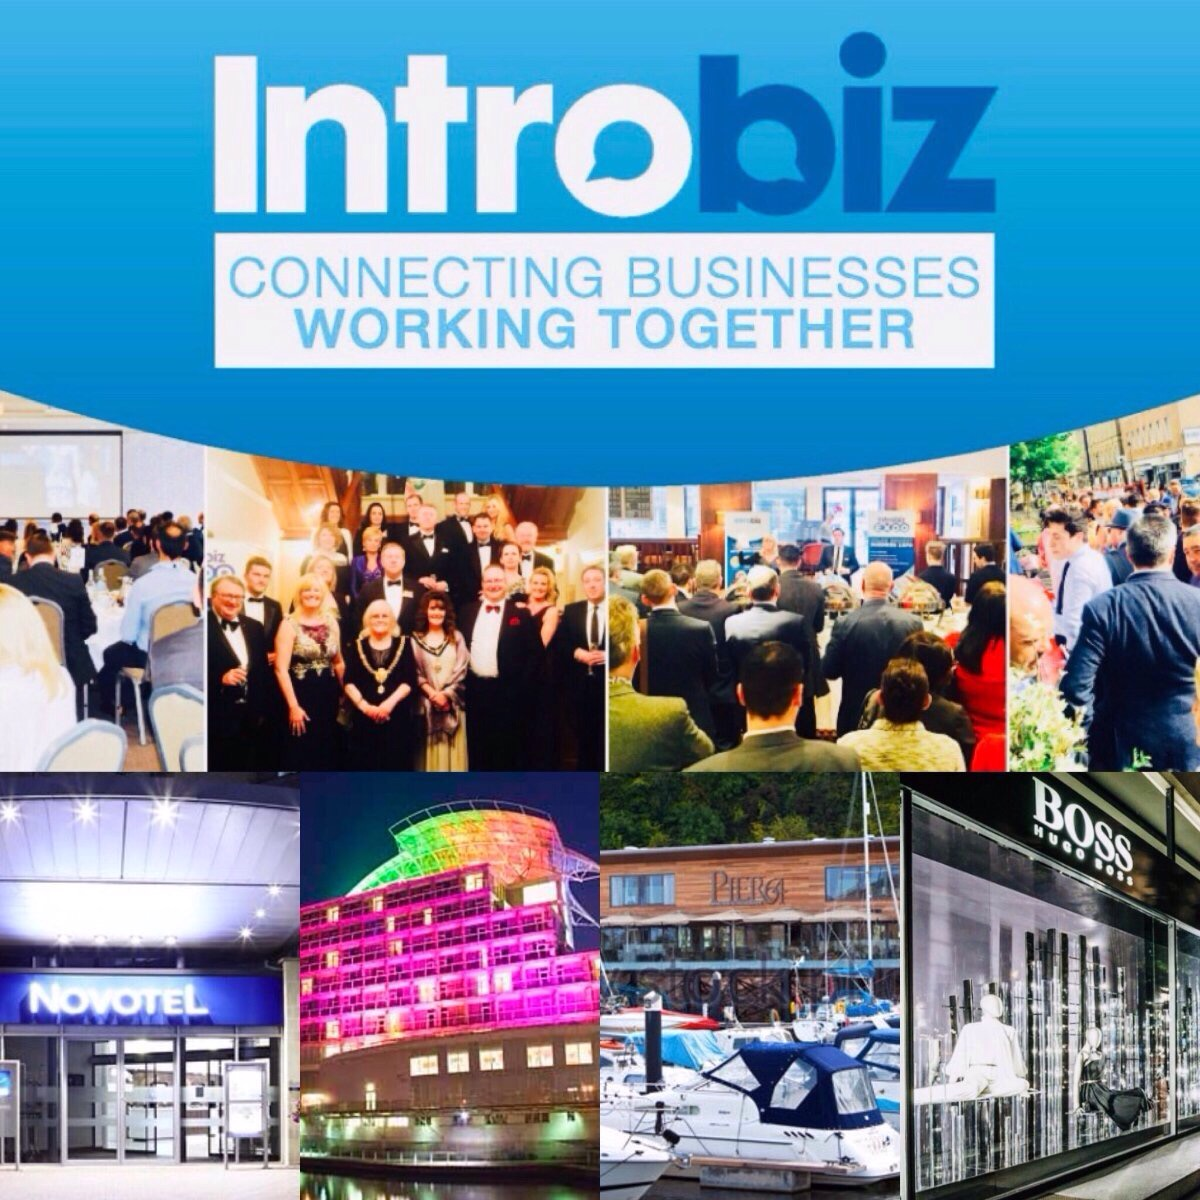 Introbiz Business Networking Event at at the Wonderful Ffos Las Racecourse, Llanelli, South Wales — Introbiz' Blog – Wales' Biggest Business Network & Expo